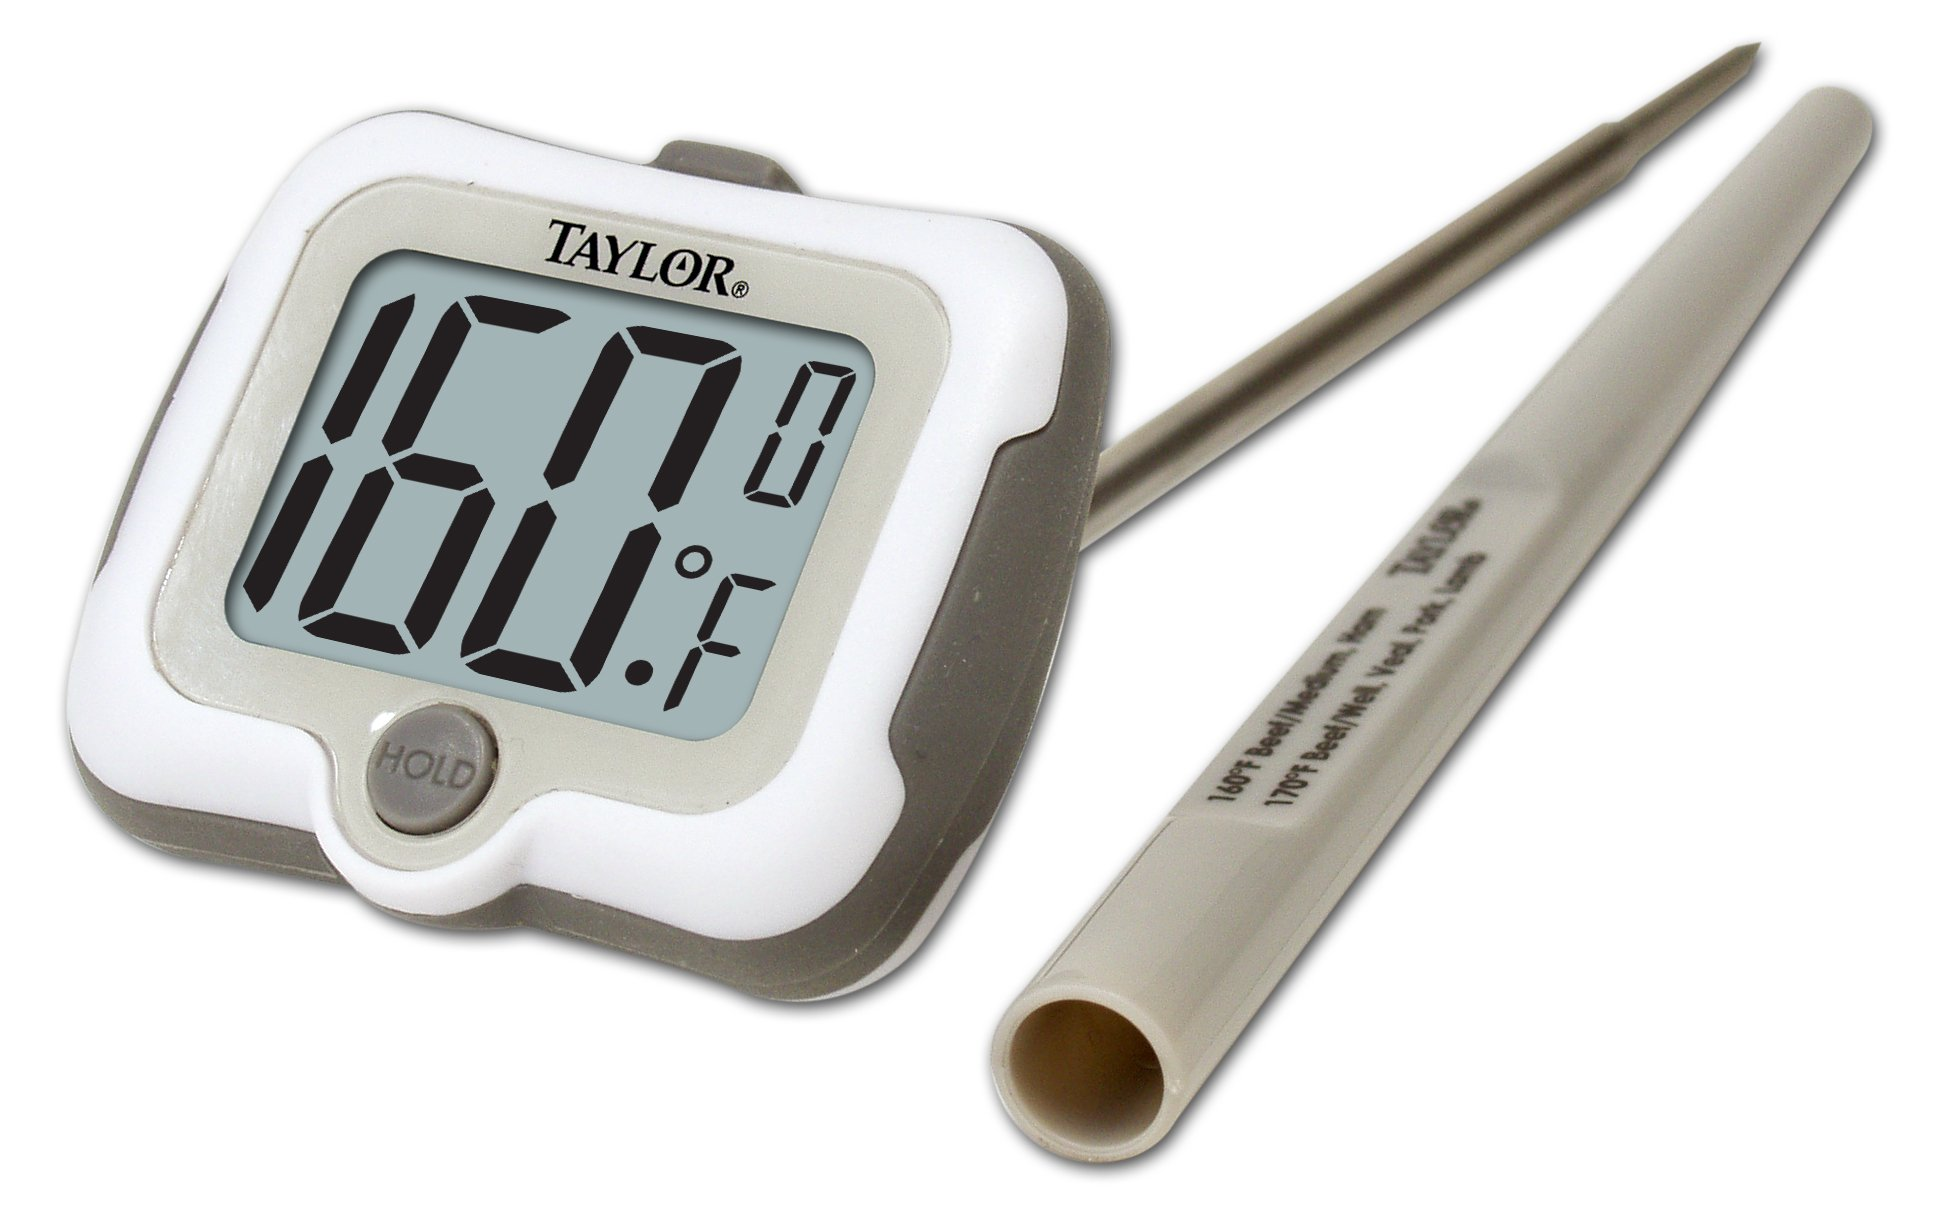 Taylor Precision Products Pro Adjustable Head Digital Thermometer